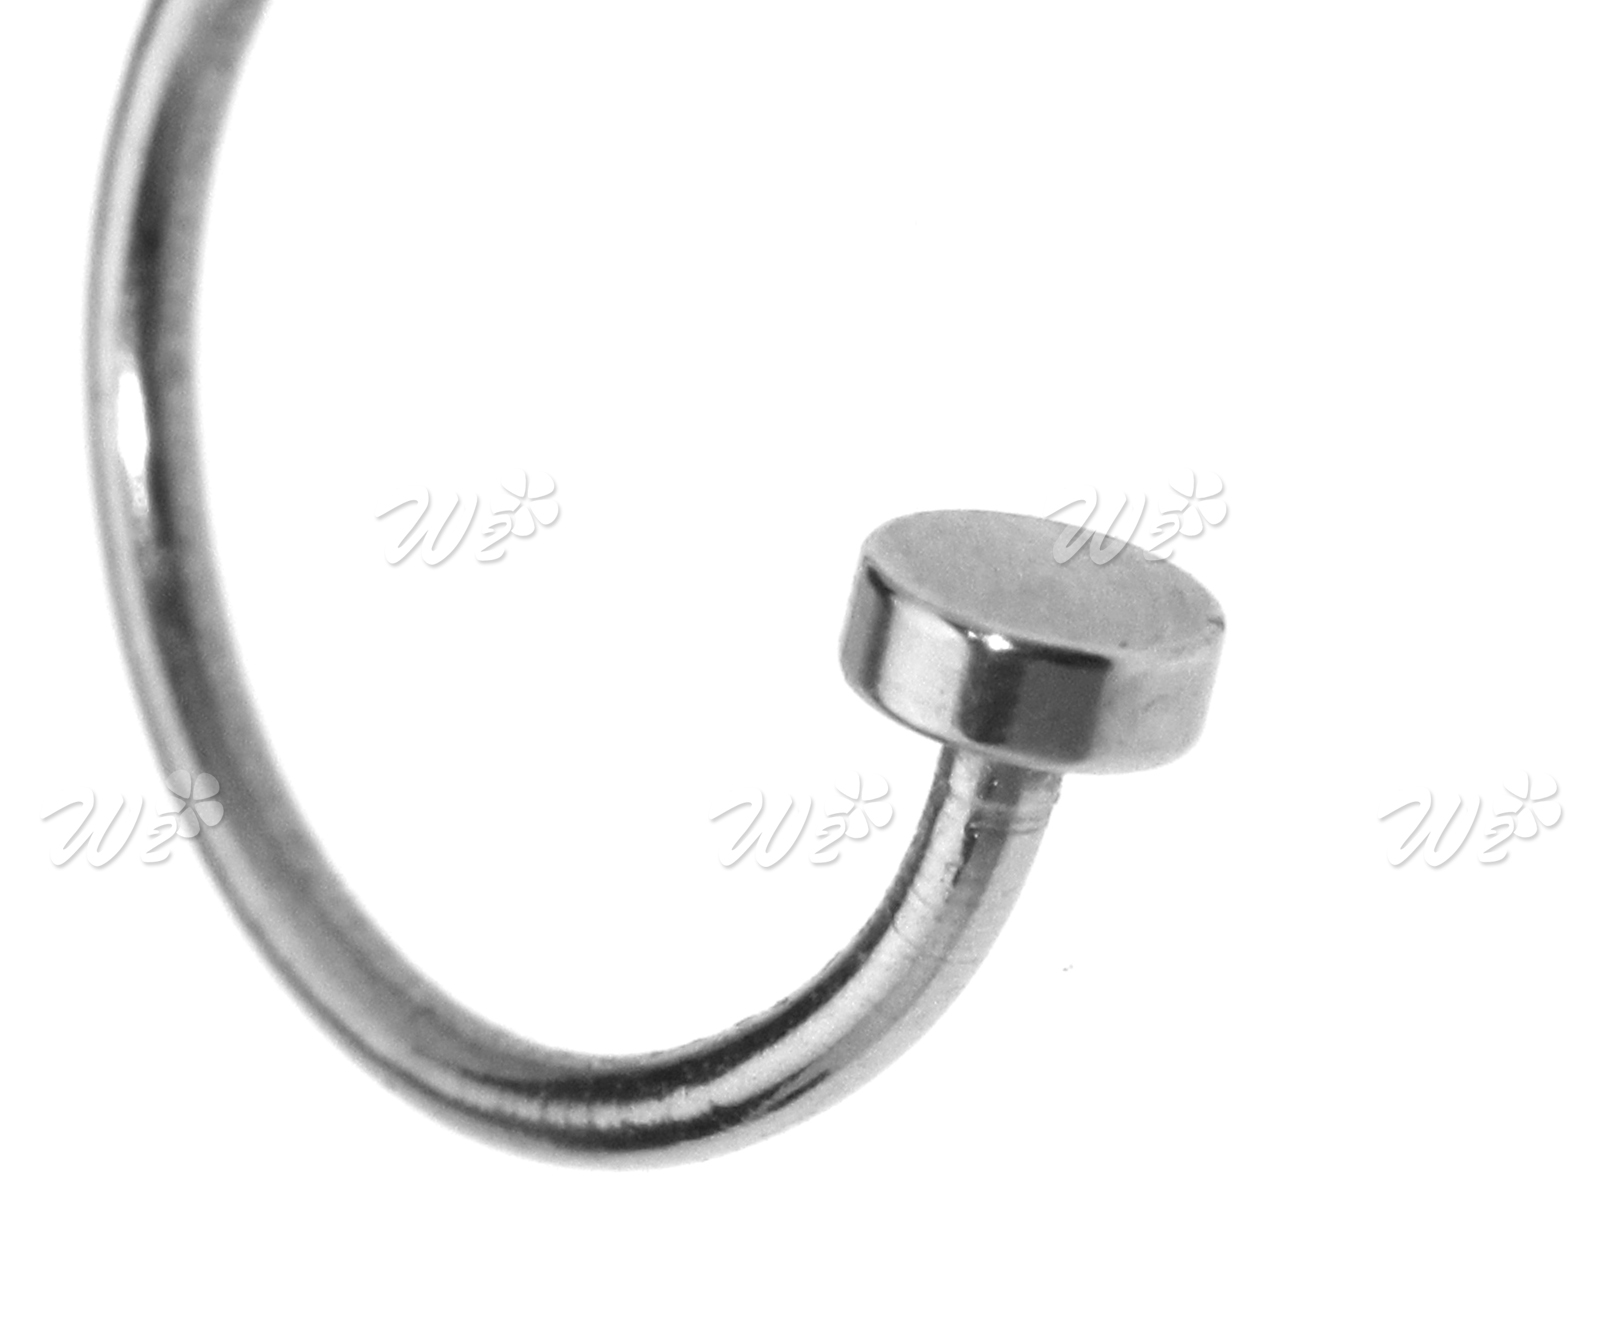 6-8MM-Nose-Ear-Ring-Surgical-Steel-Silver-Piercing-Stud-Thin-Cartilage